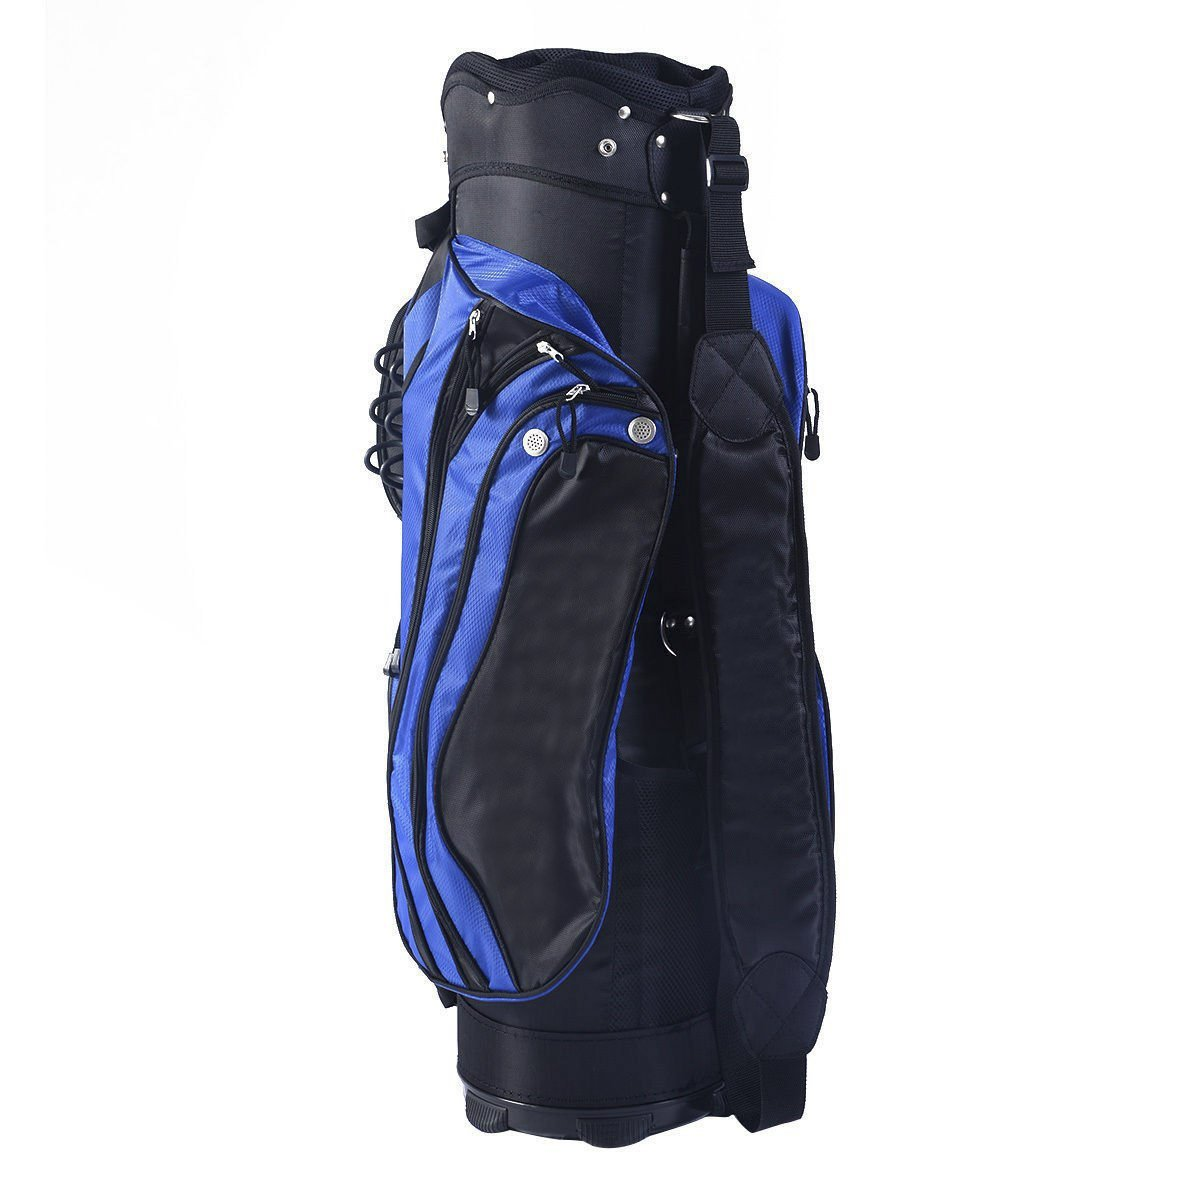 Tangkula 2016 Golf Carry Bag 14 Way Divider Lightweight w/Carry Belt Blk&Blue